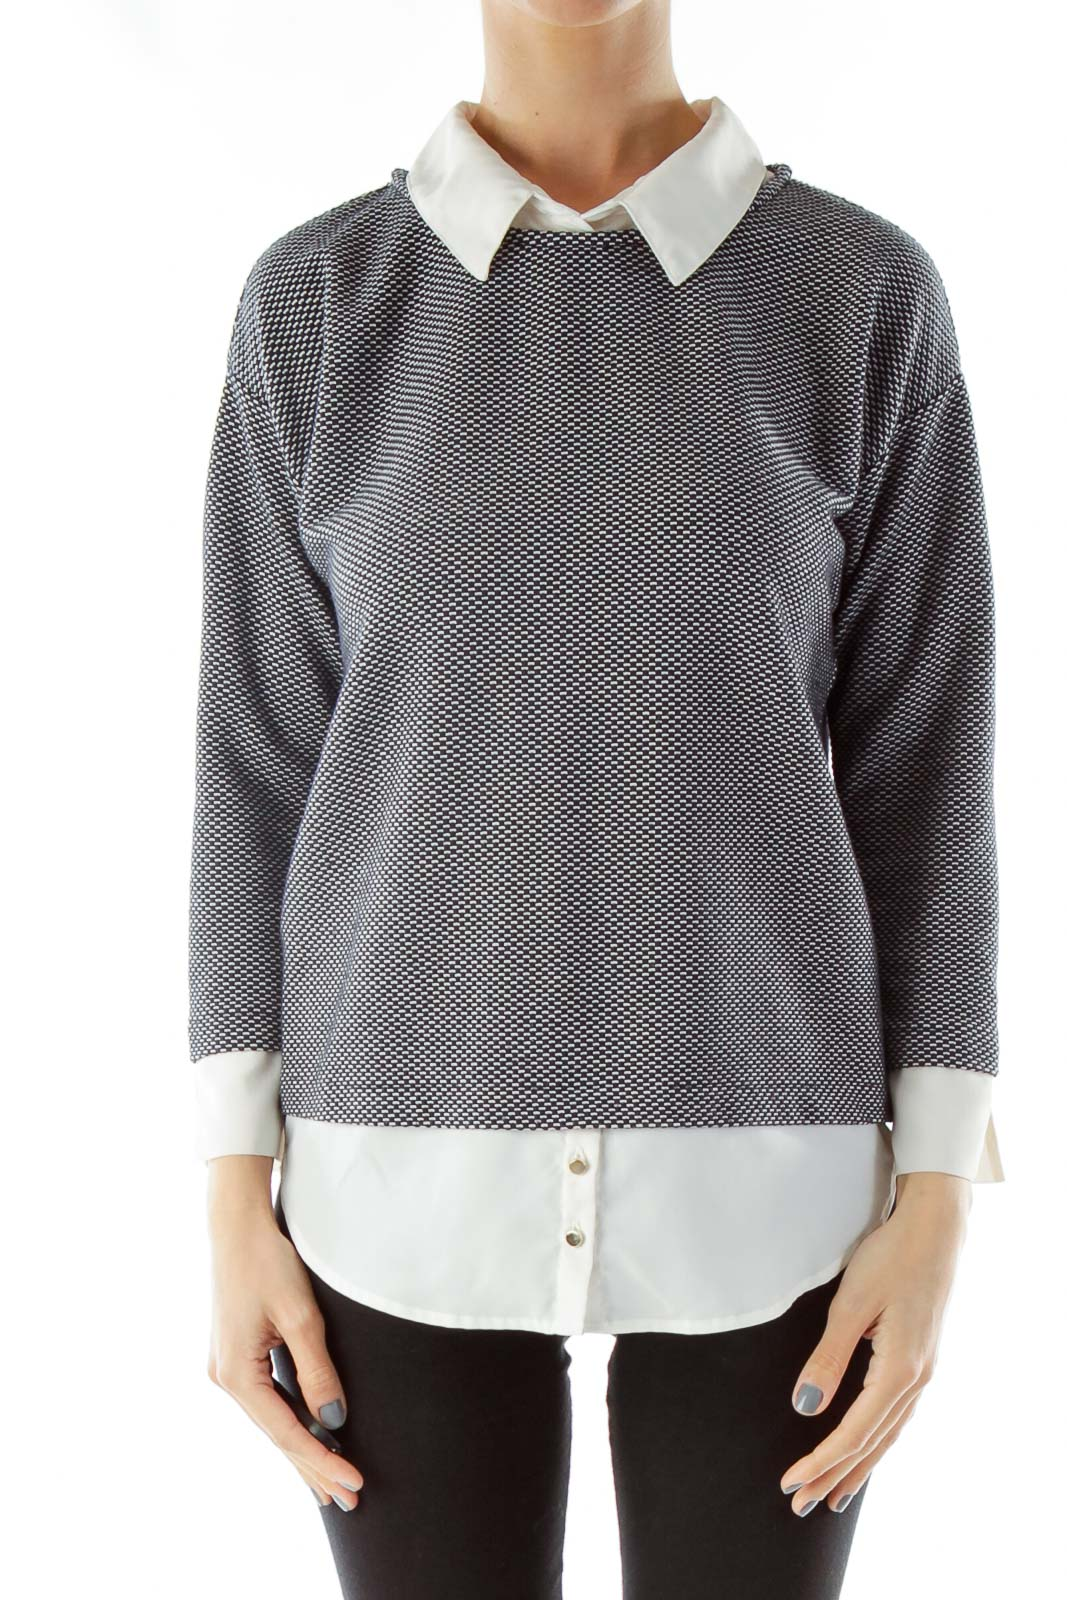 Navy Cream Sweater with Blouse